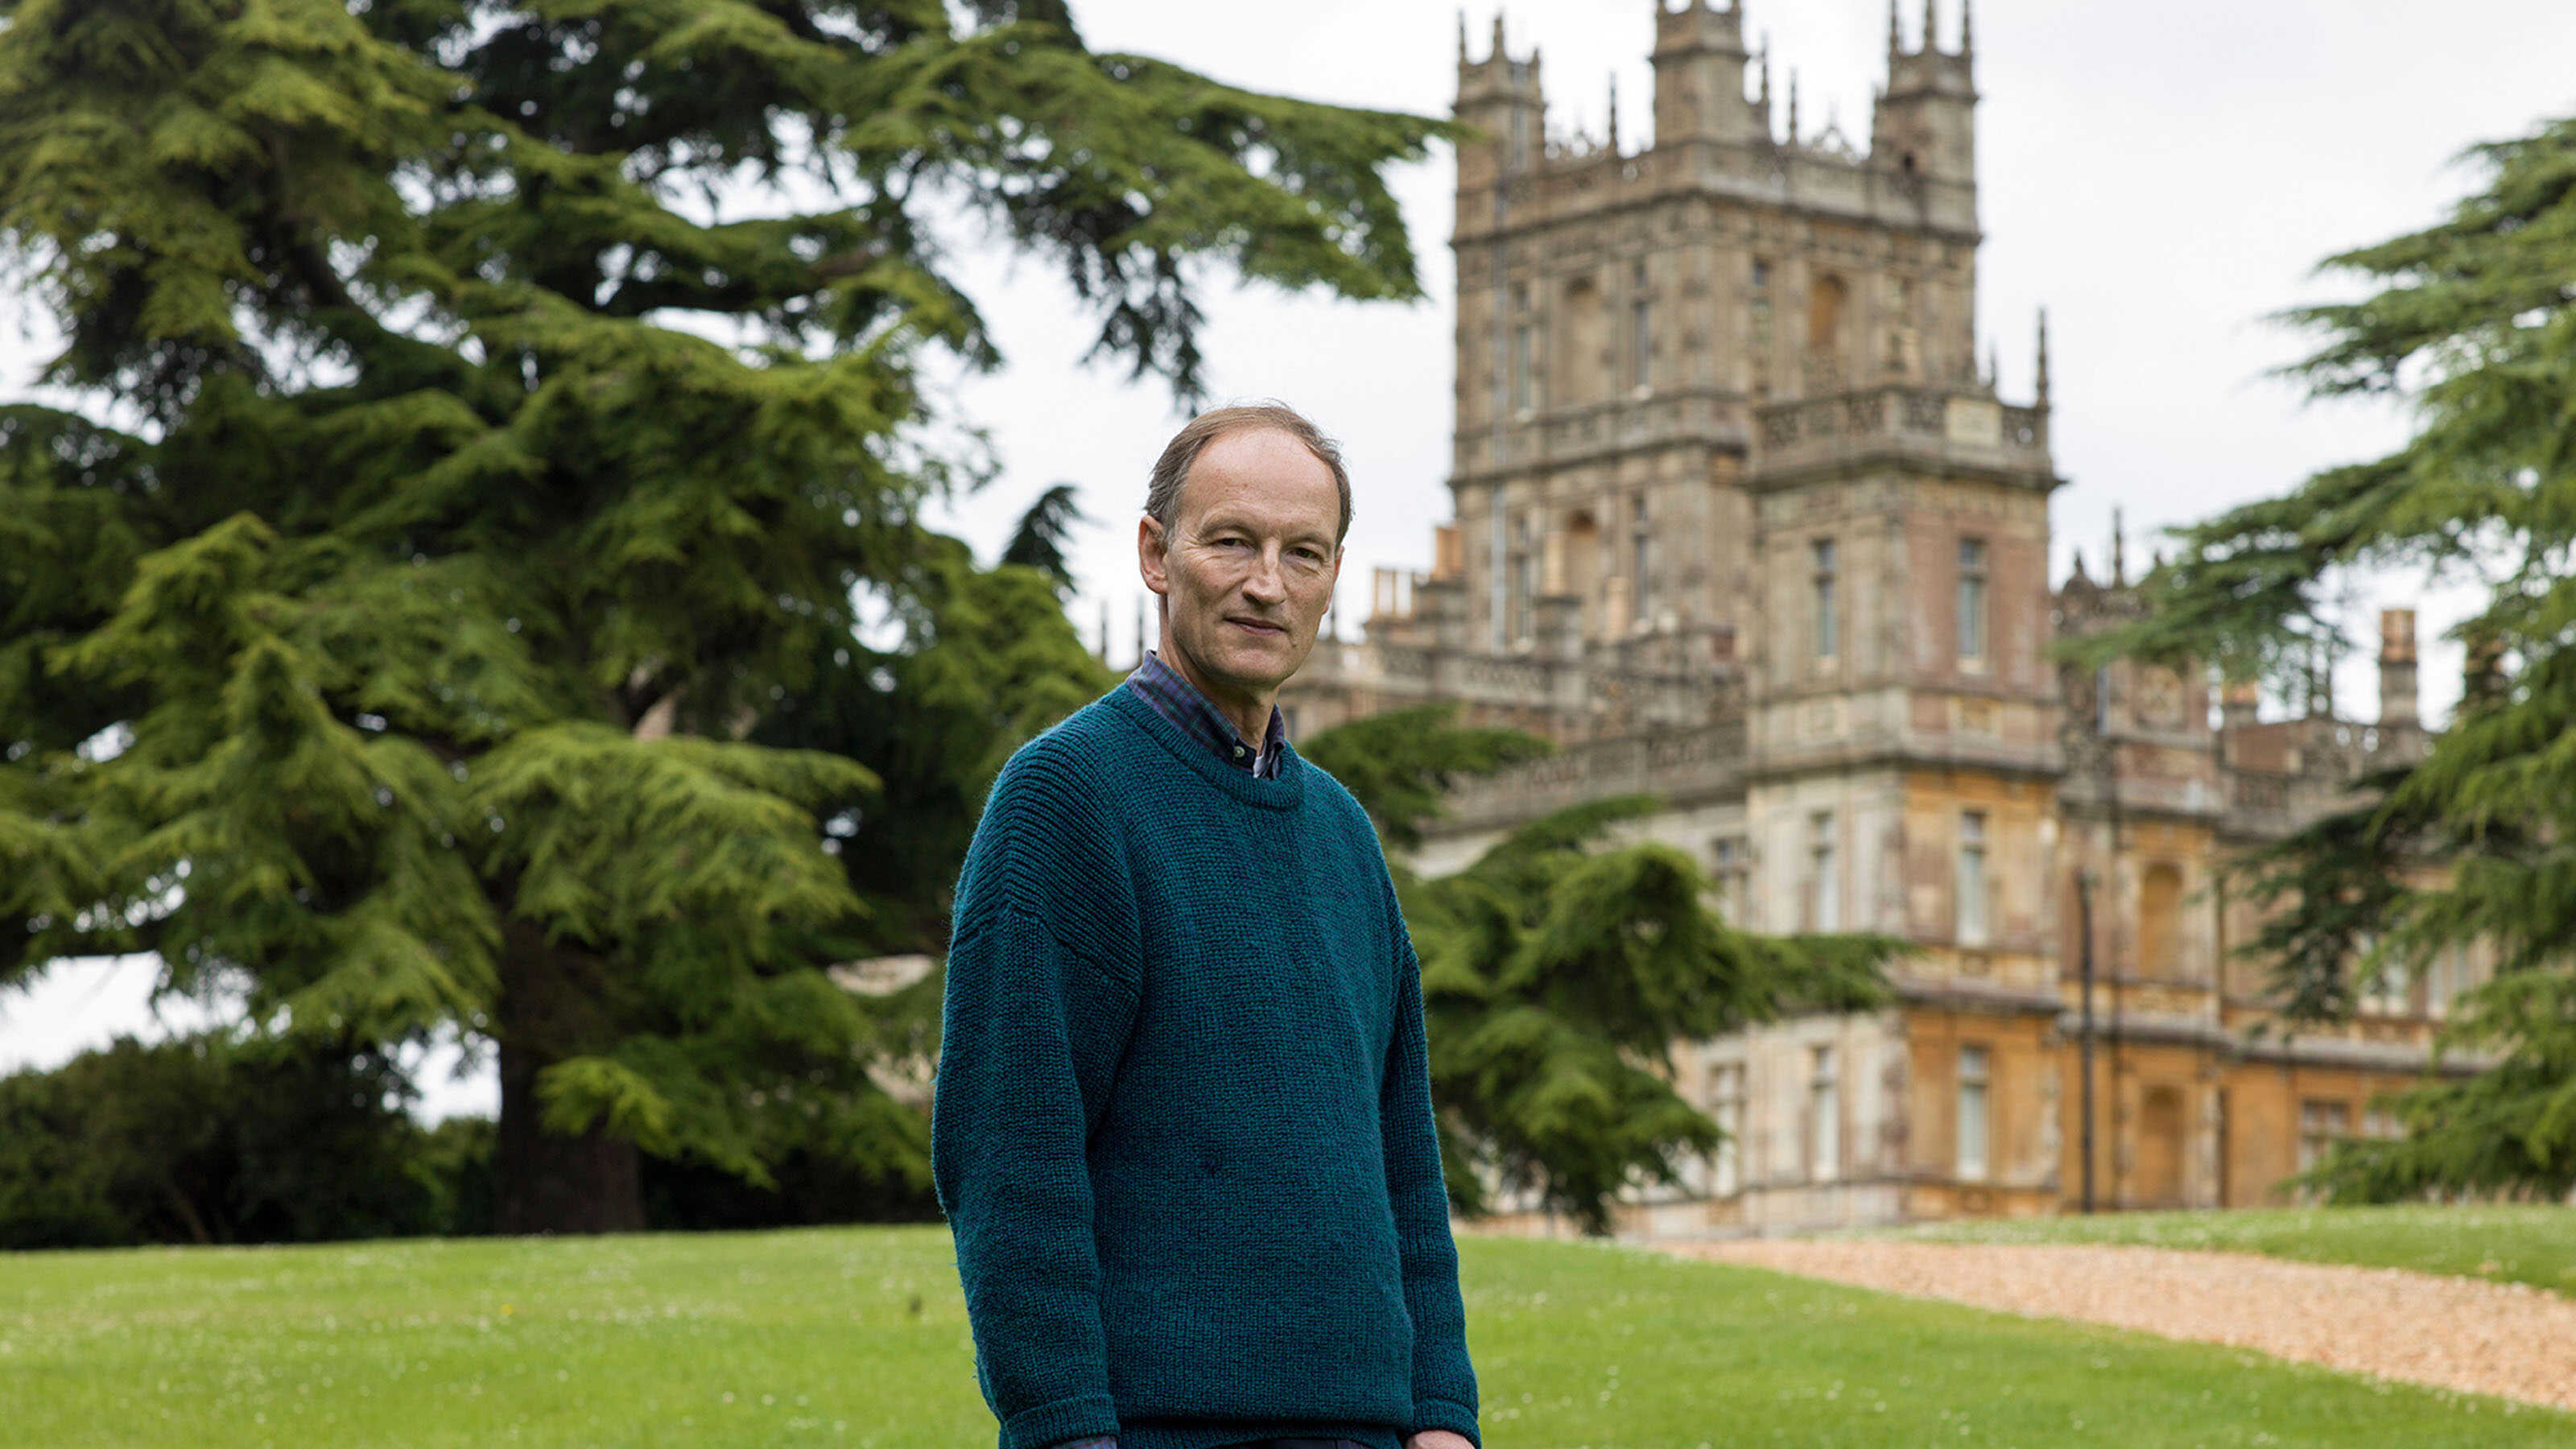 The Manners of Downton Abbey on MASTERPIECE on PBS